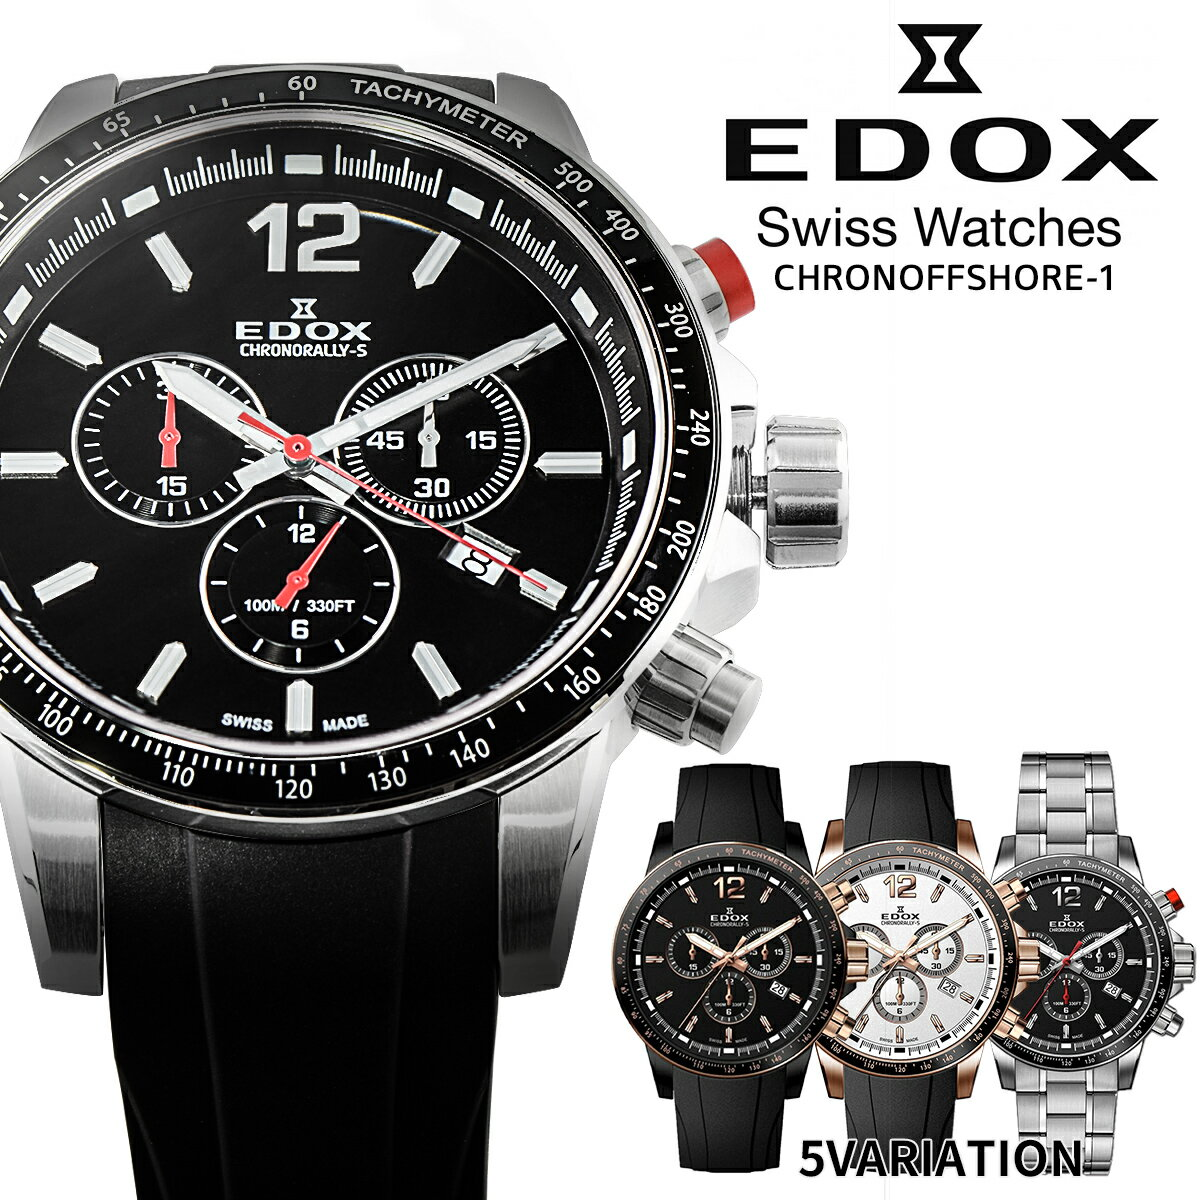 EDOX エドックス クロノラリーS CHRONORALLY-S 10229-3CA-NIN 10229-357NRCA-NIR 10229-37RCA-AIR 10229-3M-AIN 10229-3M-NIN[海外正規品]